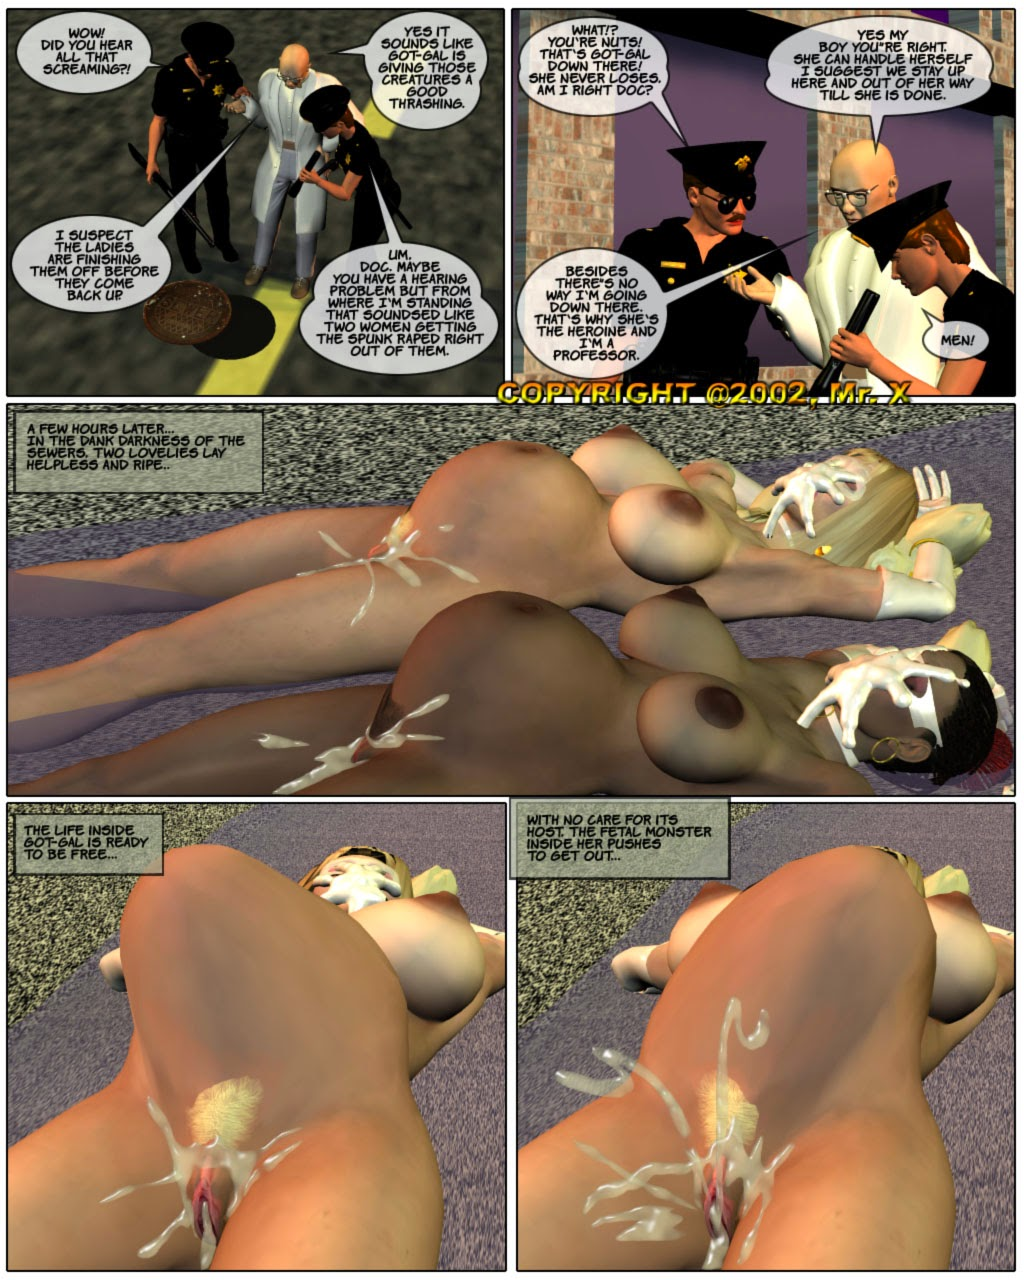 3d porno impregnation movie hentai comics